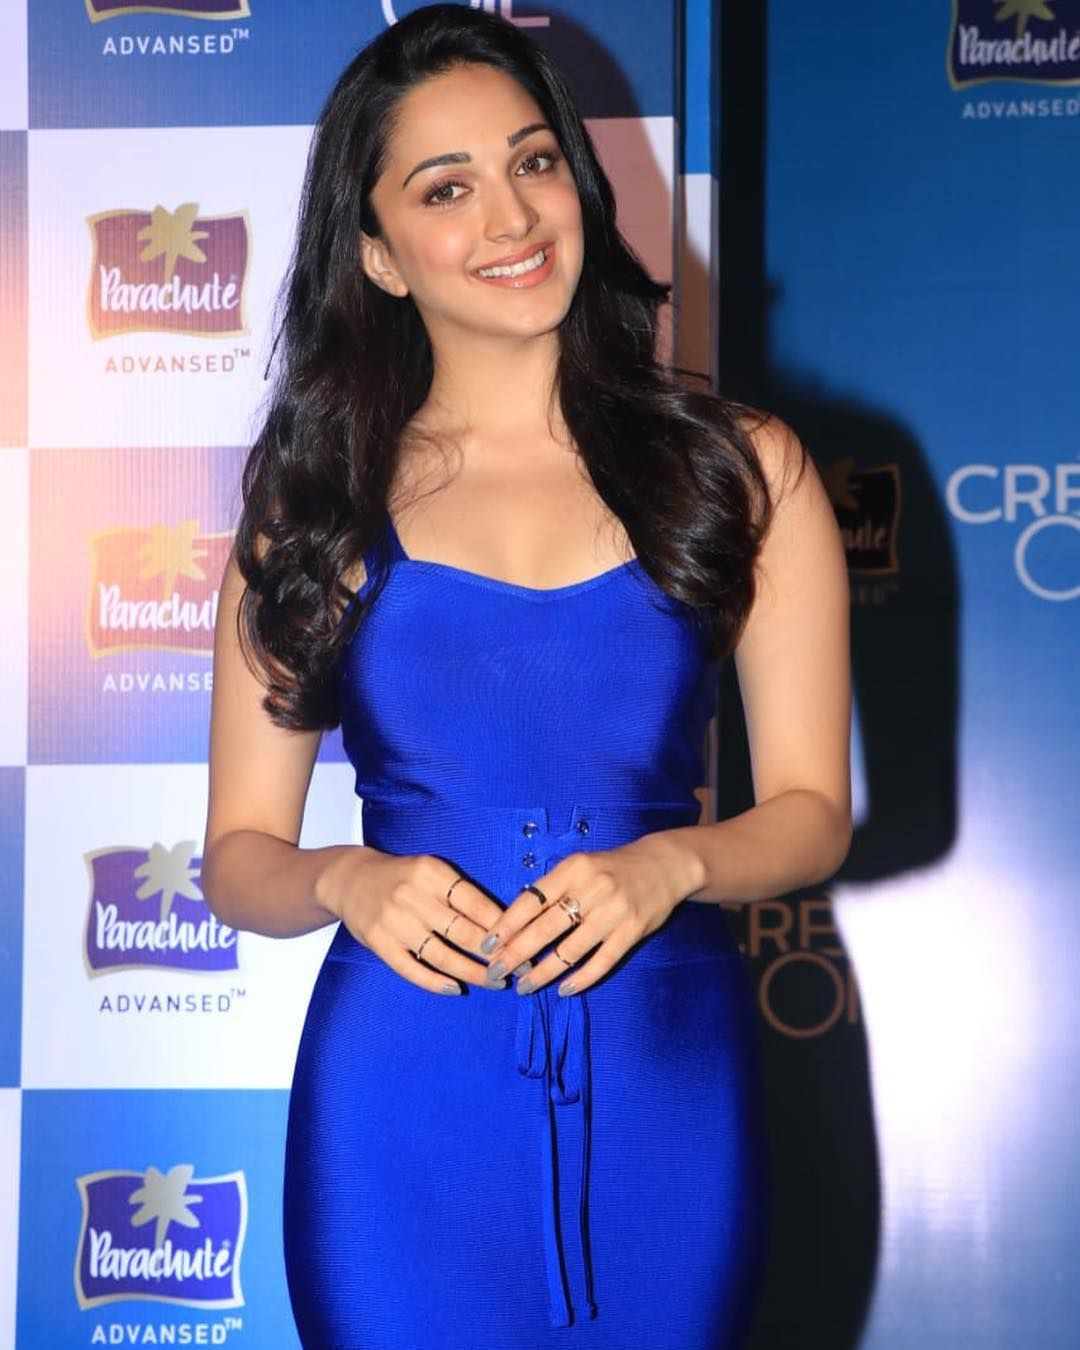 Kiara Advani at an event for a brand